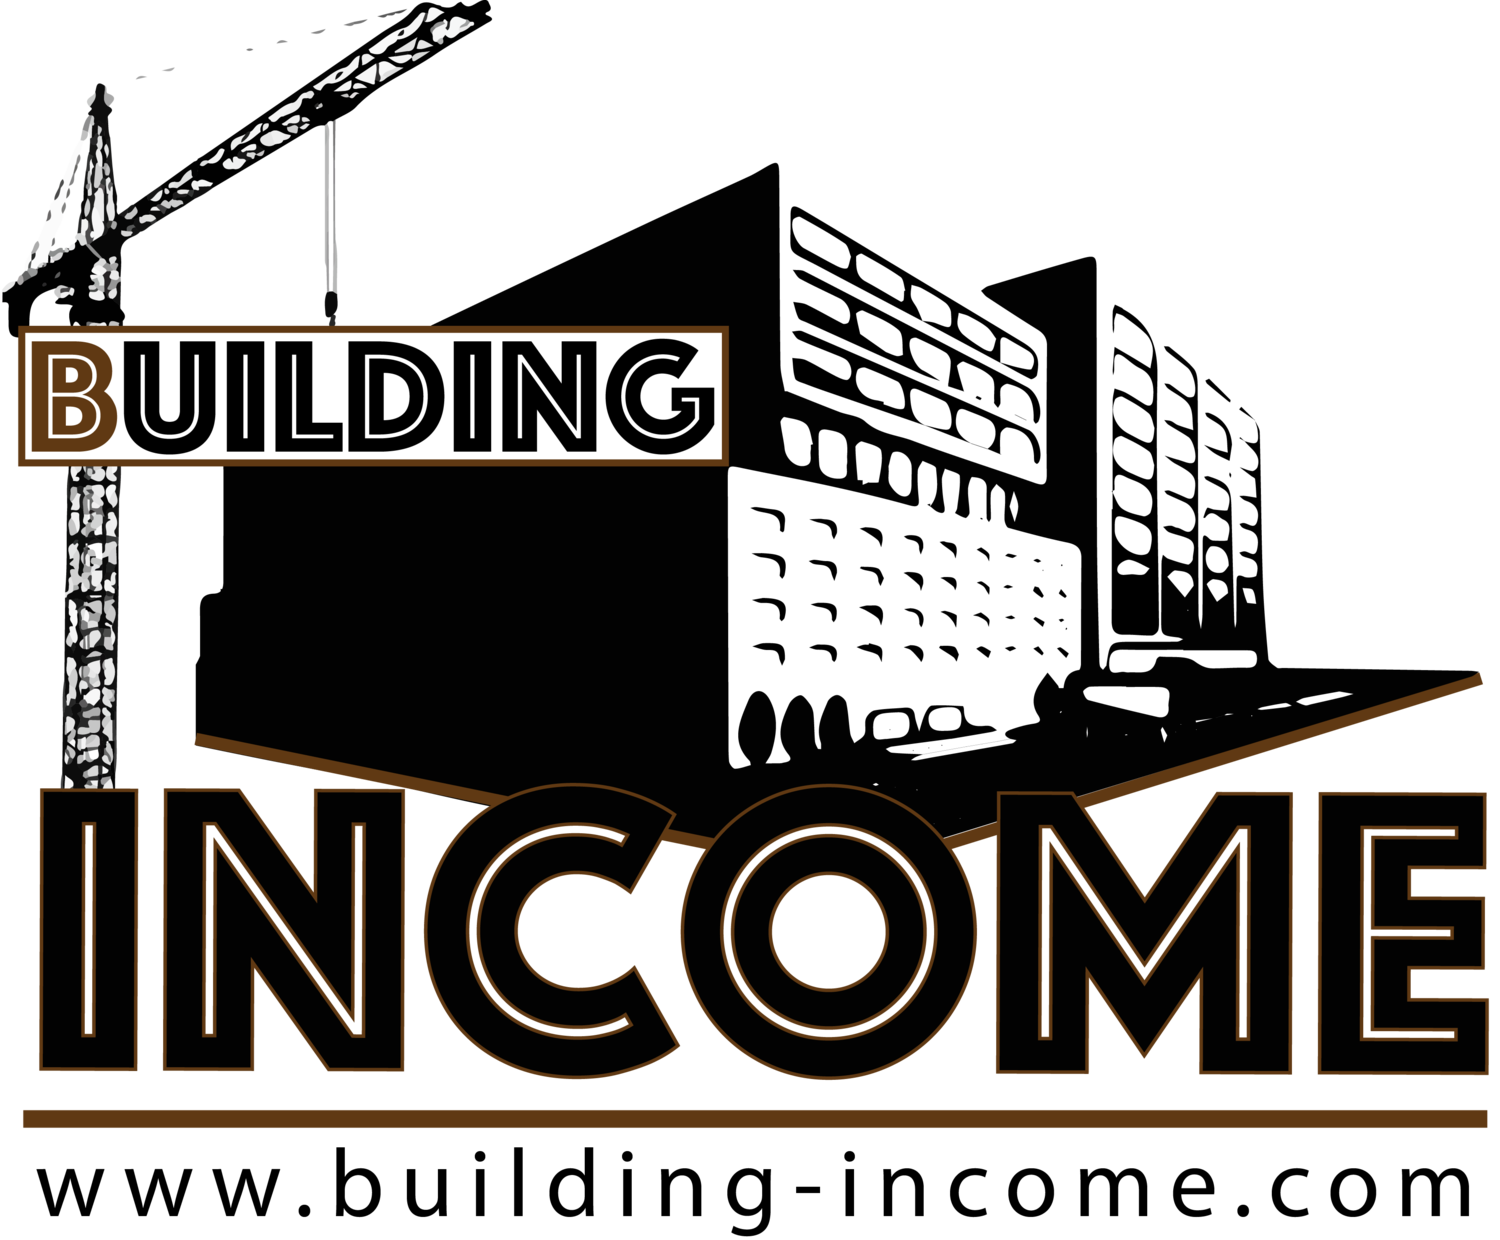 Building Income